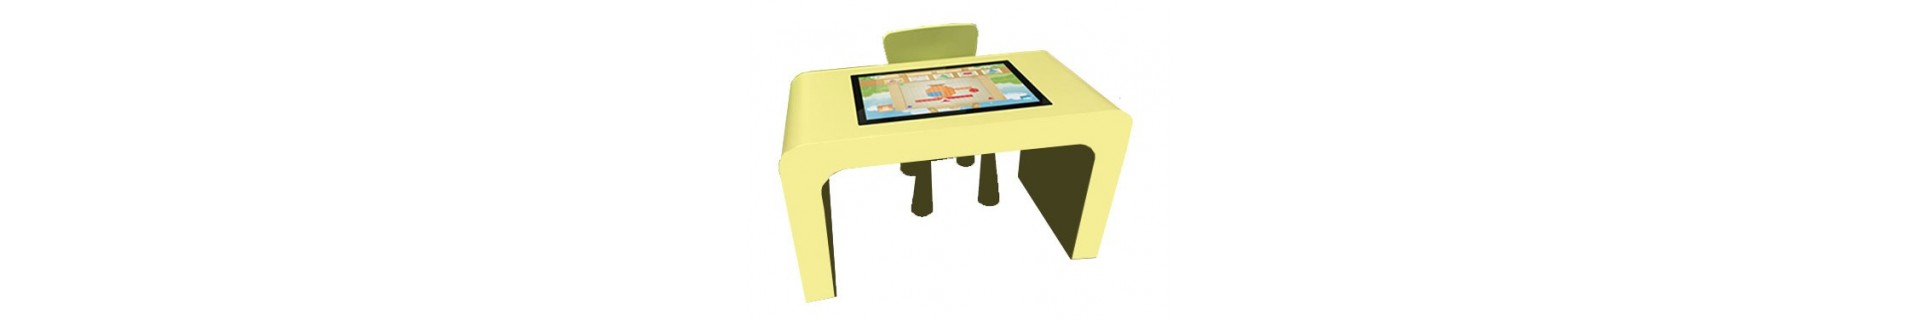 Bornes,tables interactives enfants